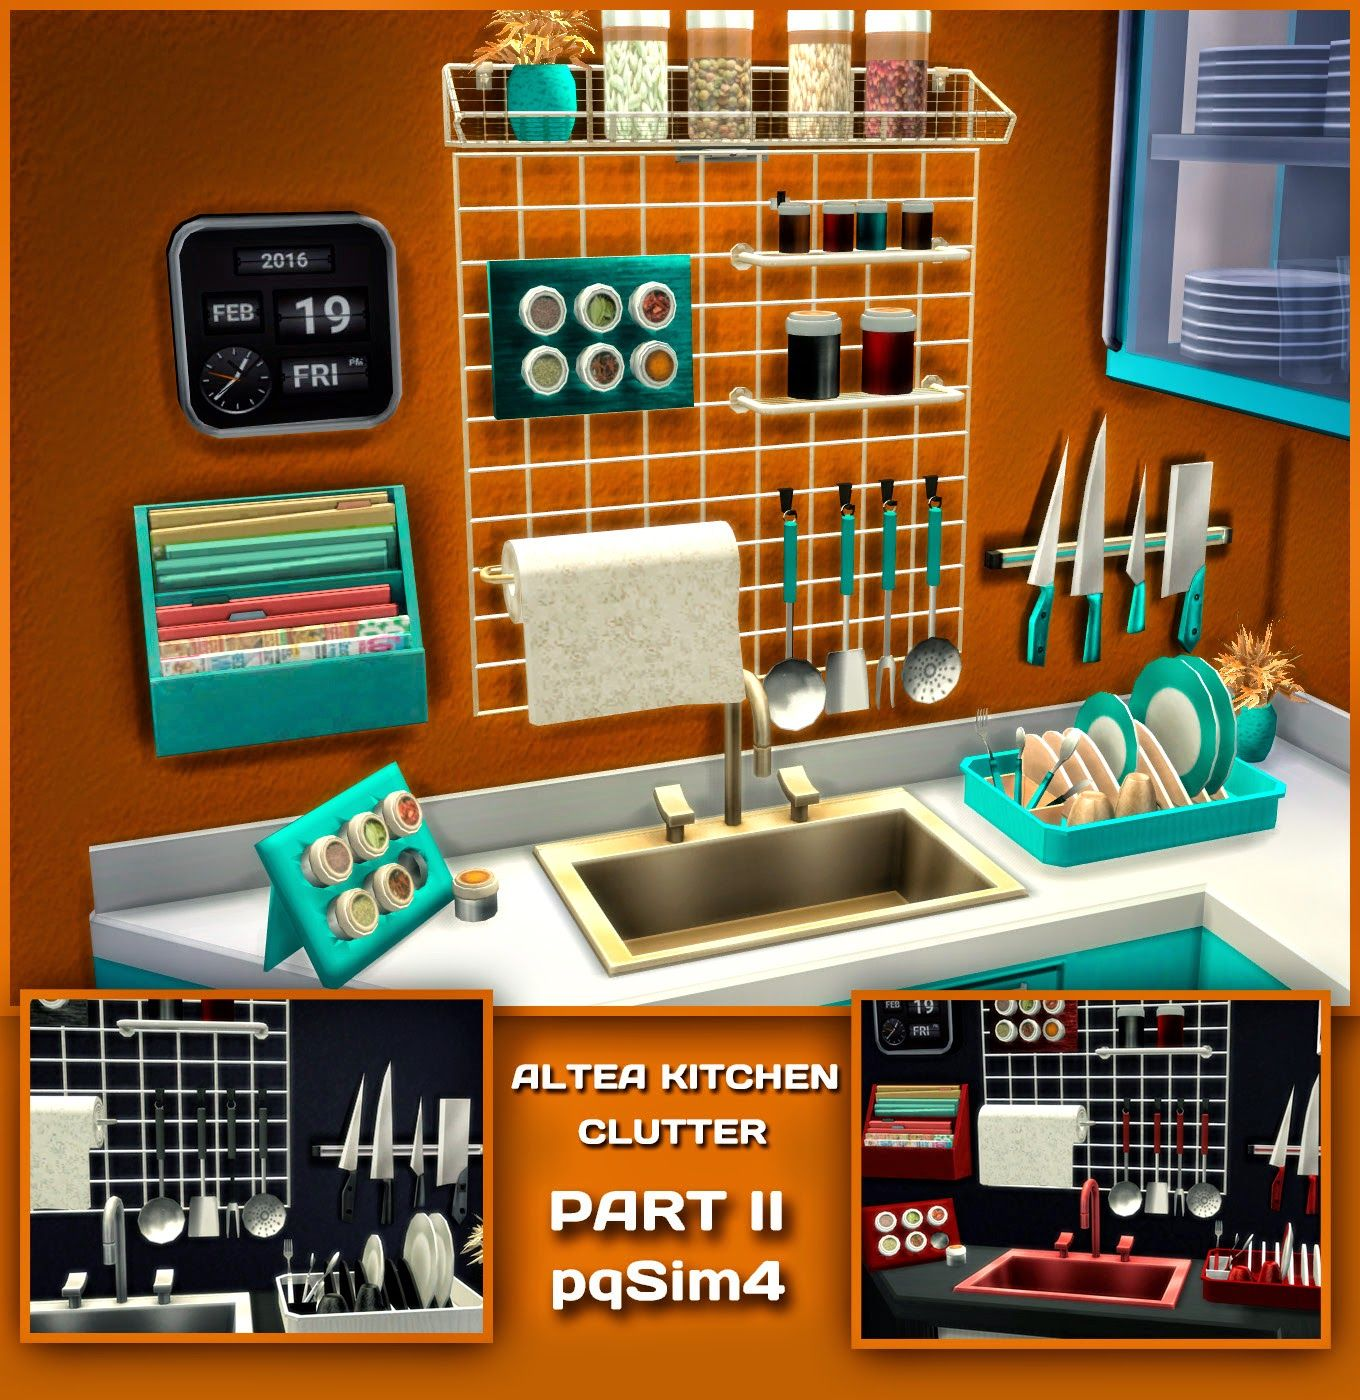 Sims 4 mm cc maxis match kitchen clutter sims 4 Sims 3 home decor photography